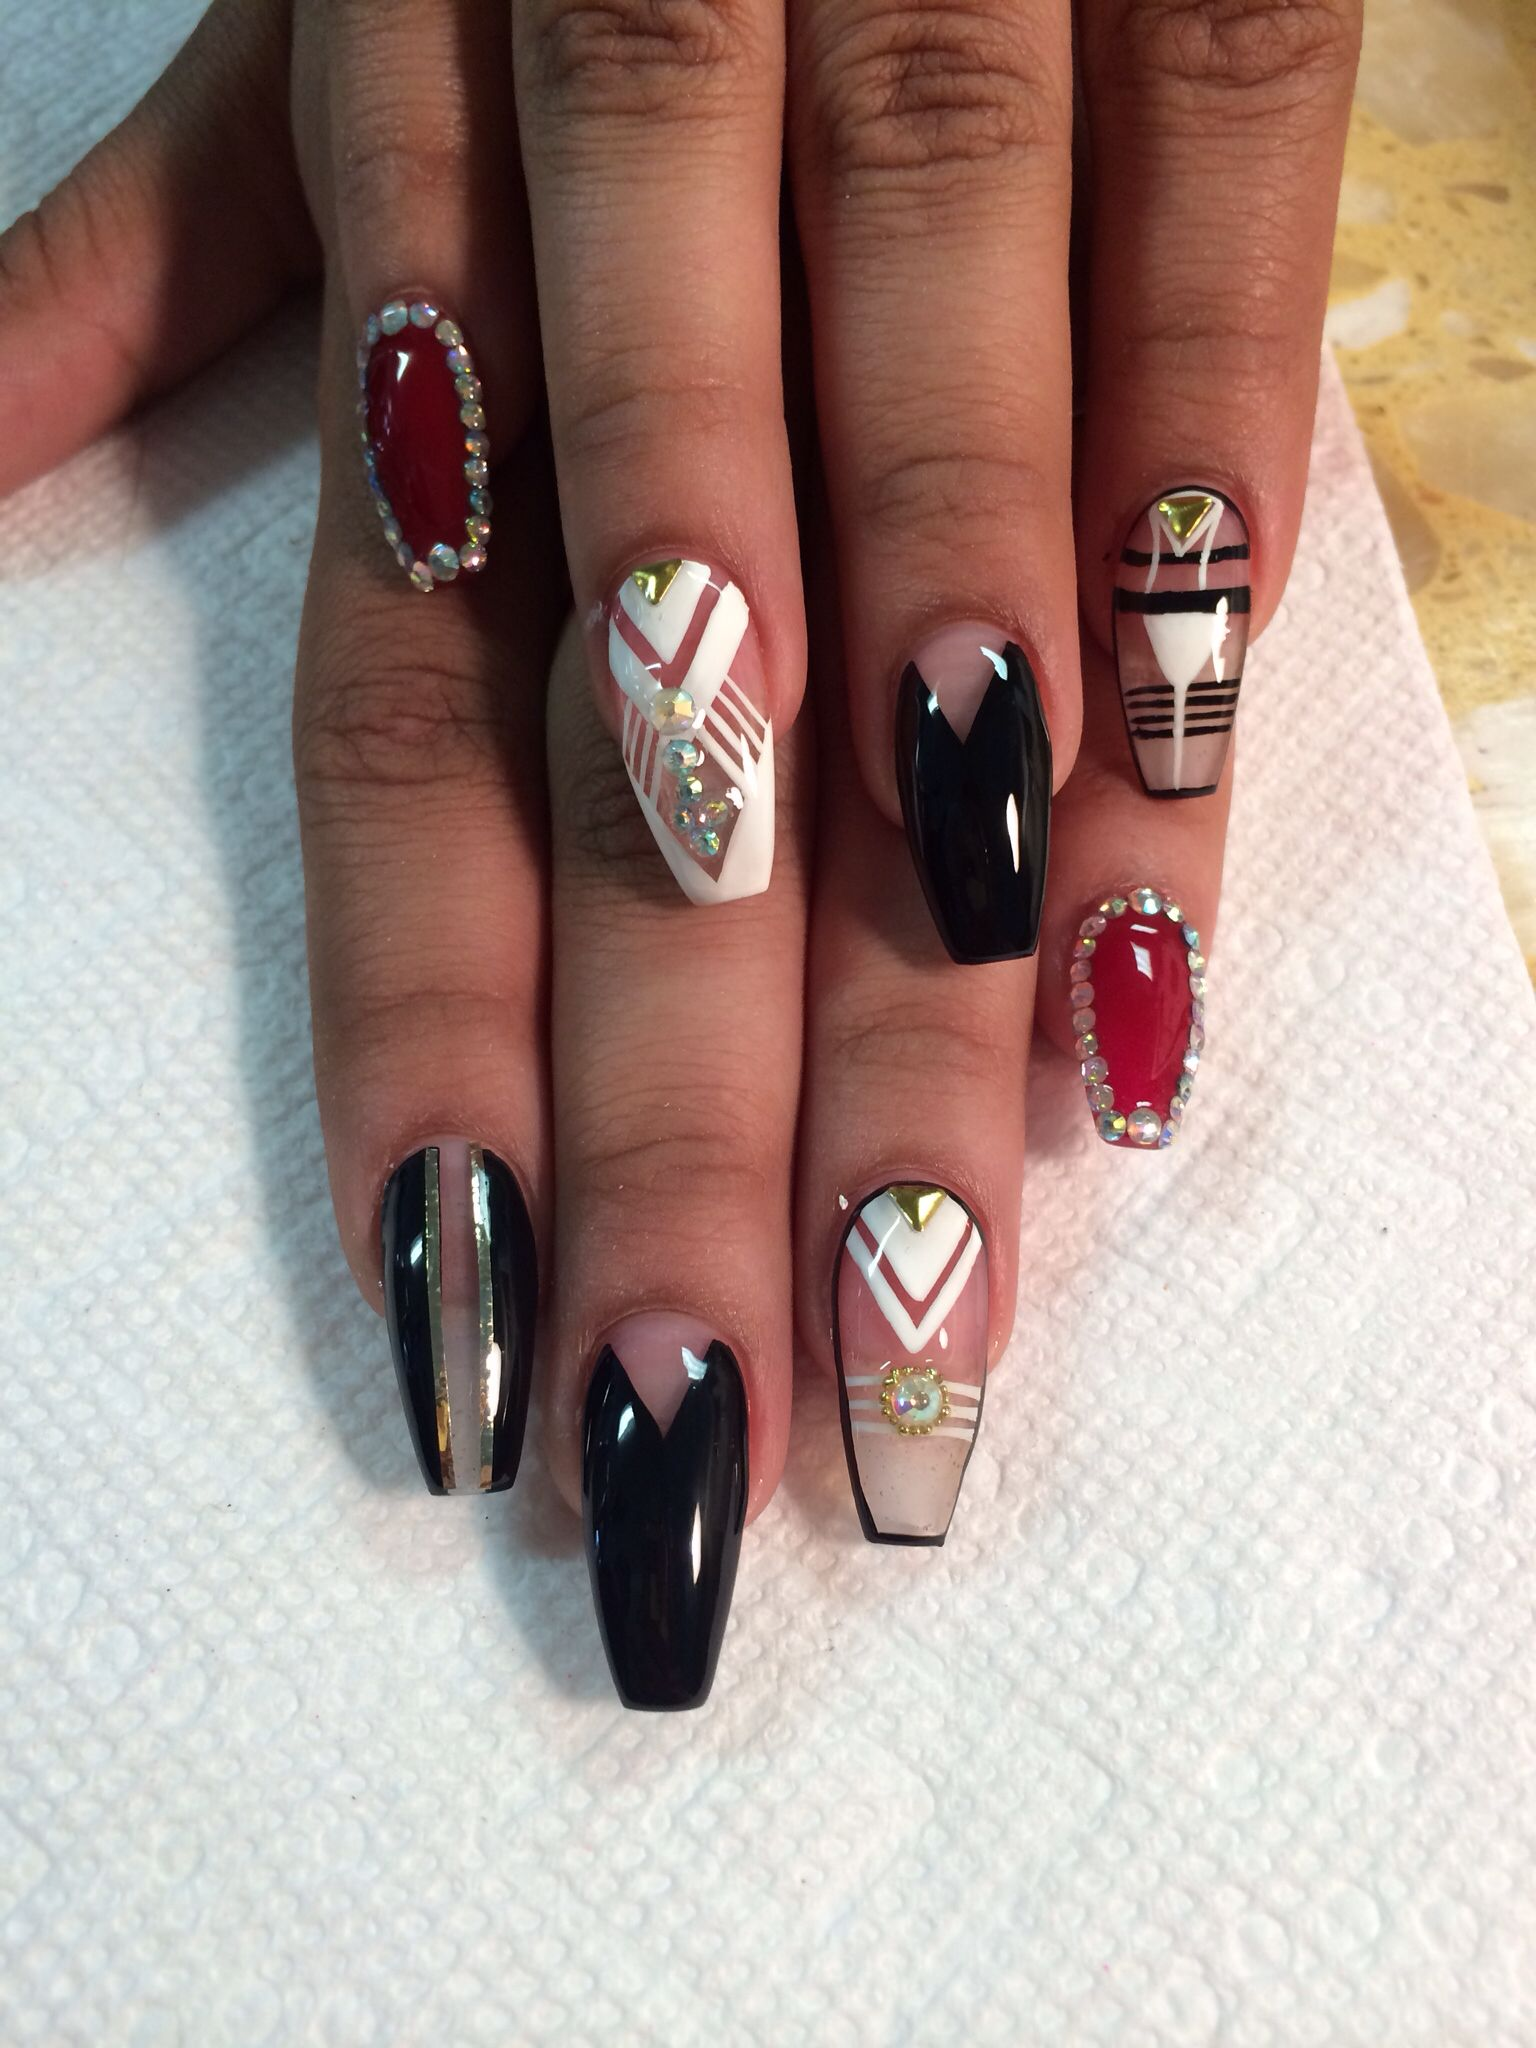 Coffin shape nails with designs u nails u pinterest coffin